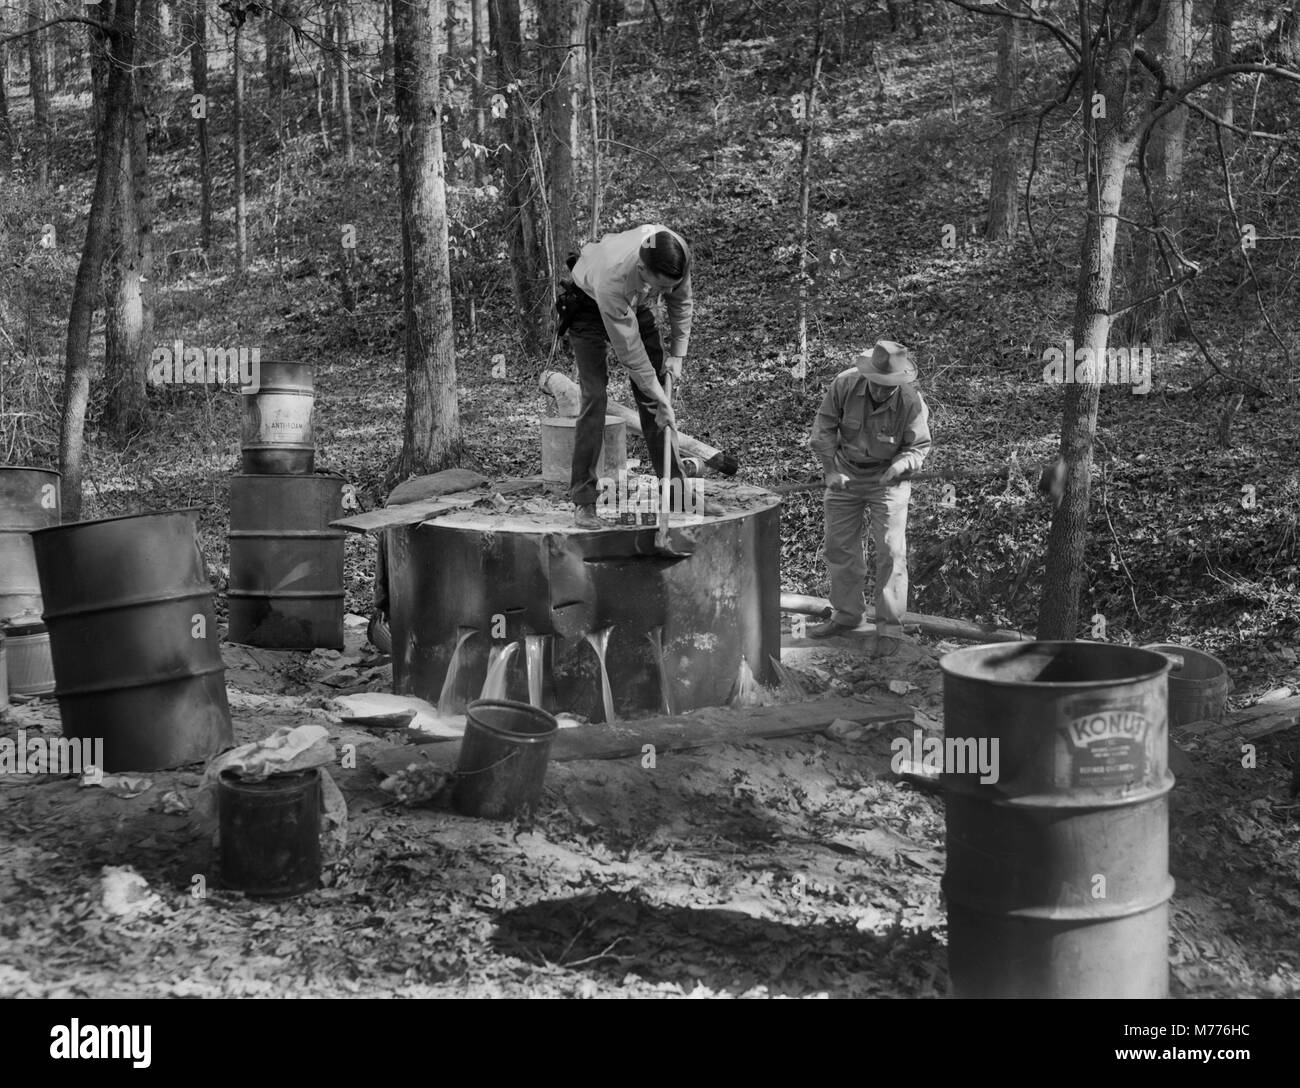 Law enforcement officers destroy a backwoods moonshine still in rural Georgia, ca. 1952. - Stock Image